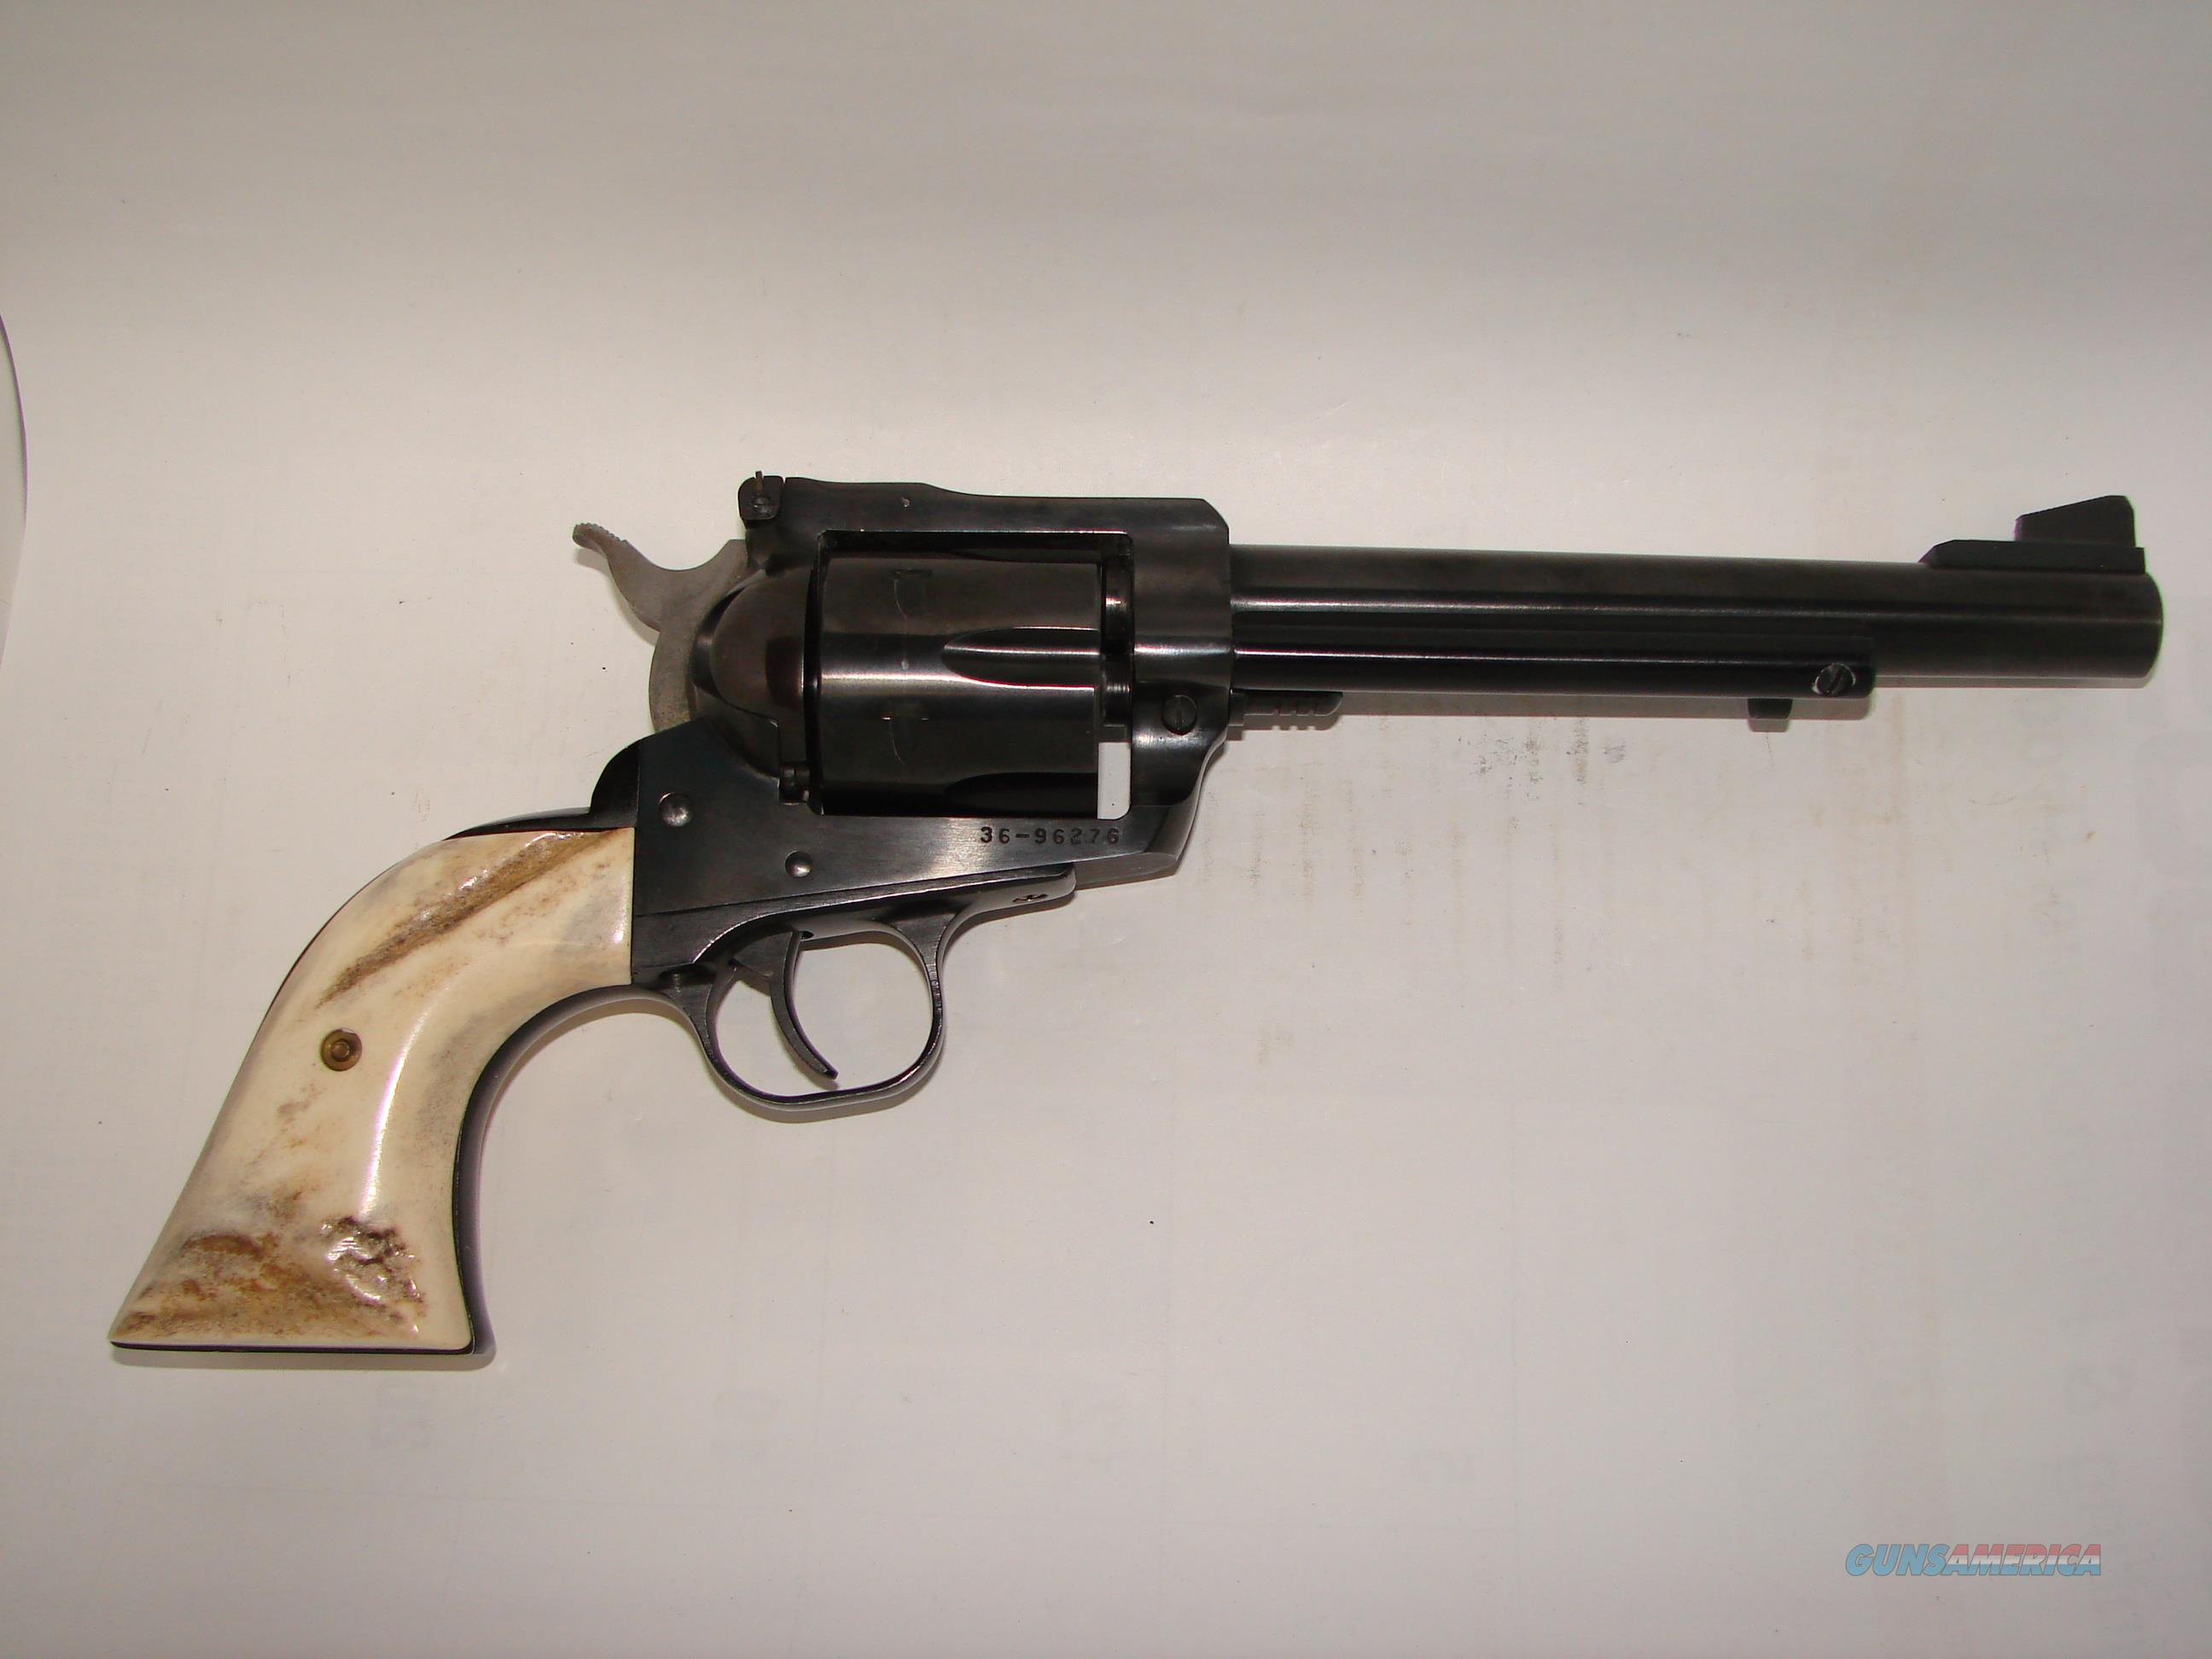 Ruger Blackhawk  Guns > Pistols > Ruger Single Action Revolvers > Blackhawk Type